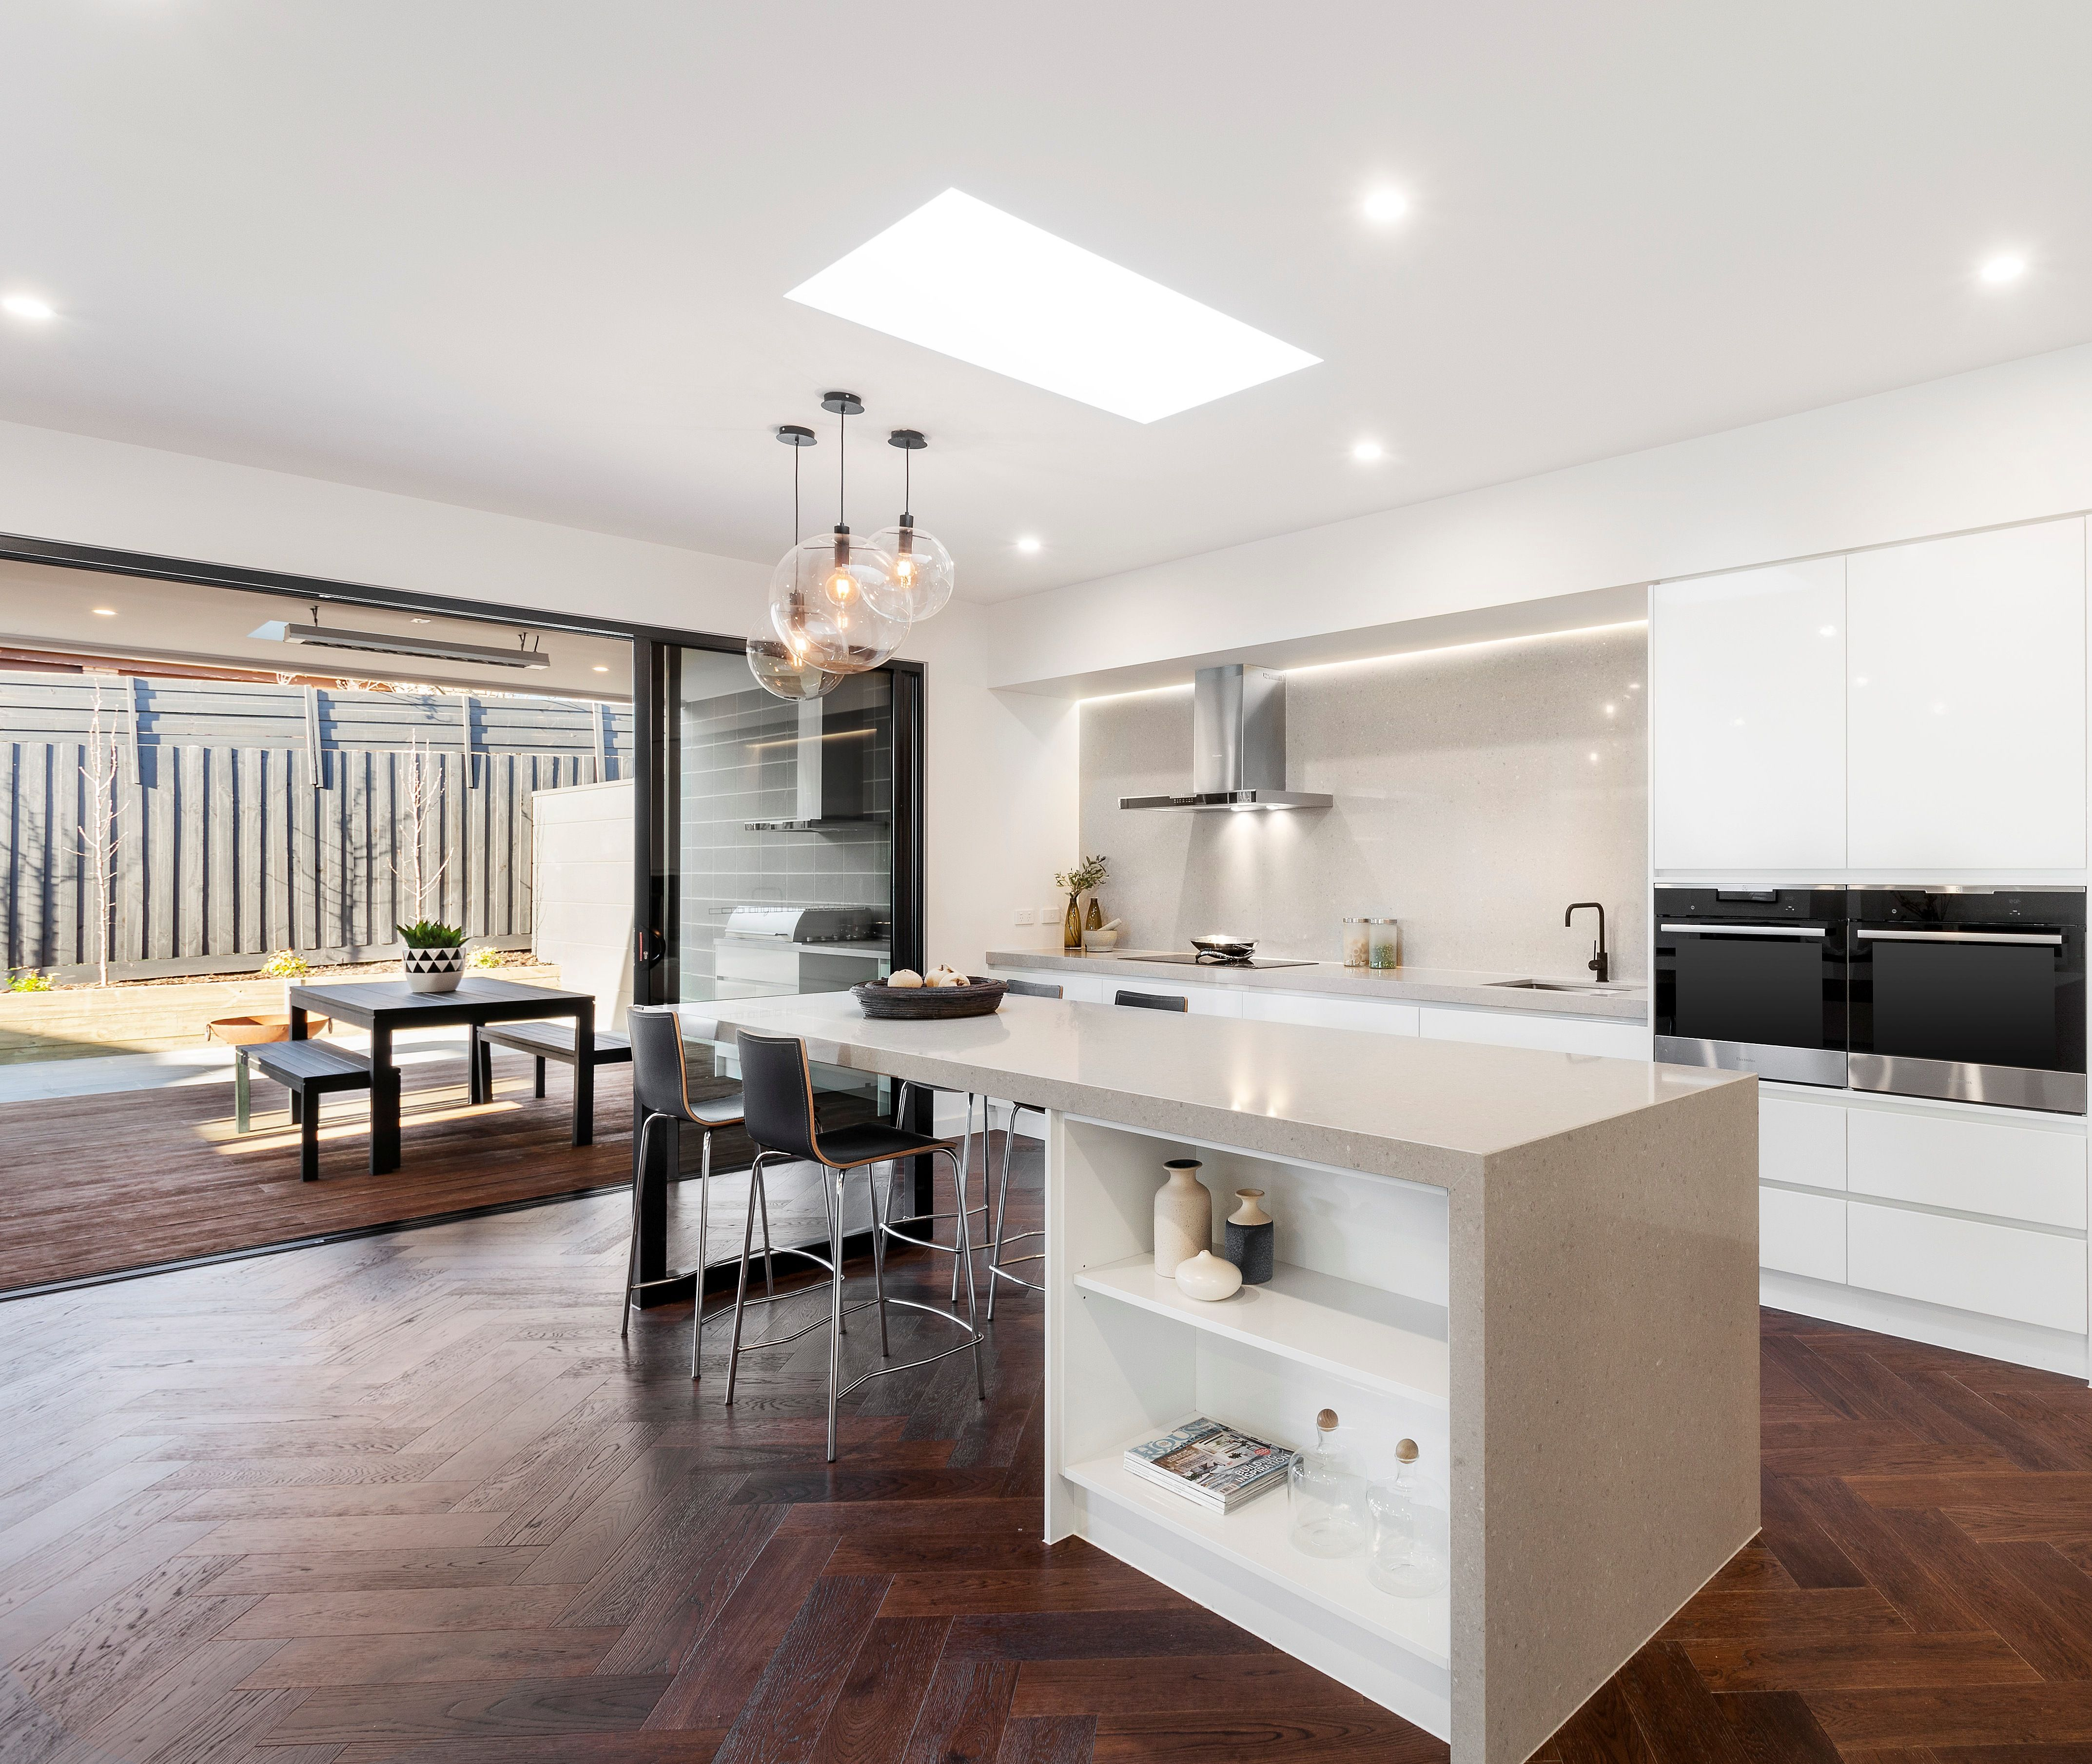 Ash Grey Quantum Quartz Benchtops Amp Splashback By Cahill Building Group White Modern